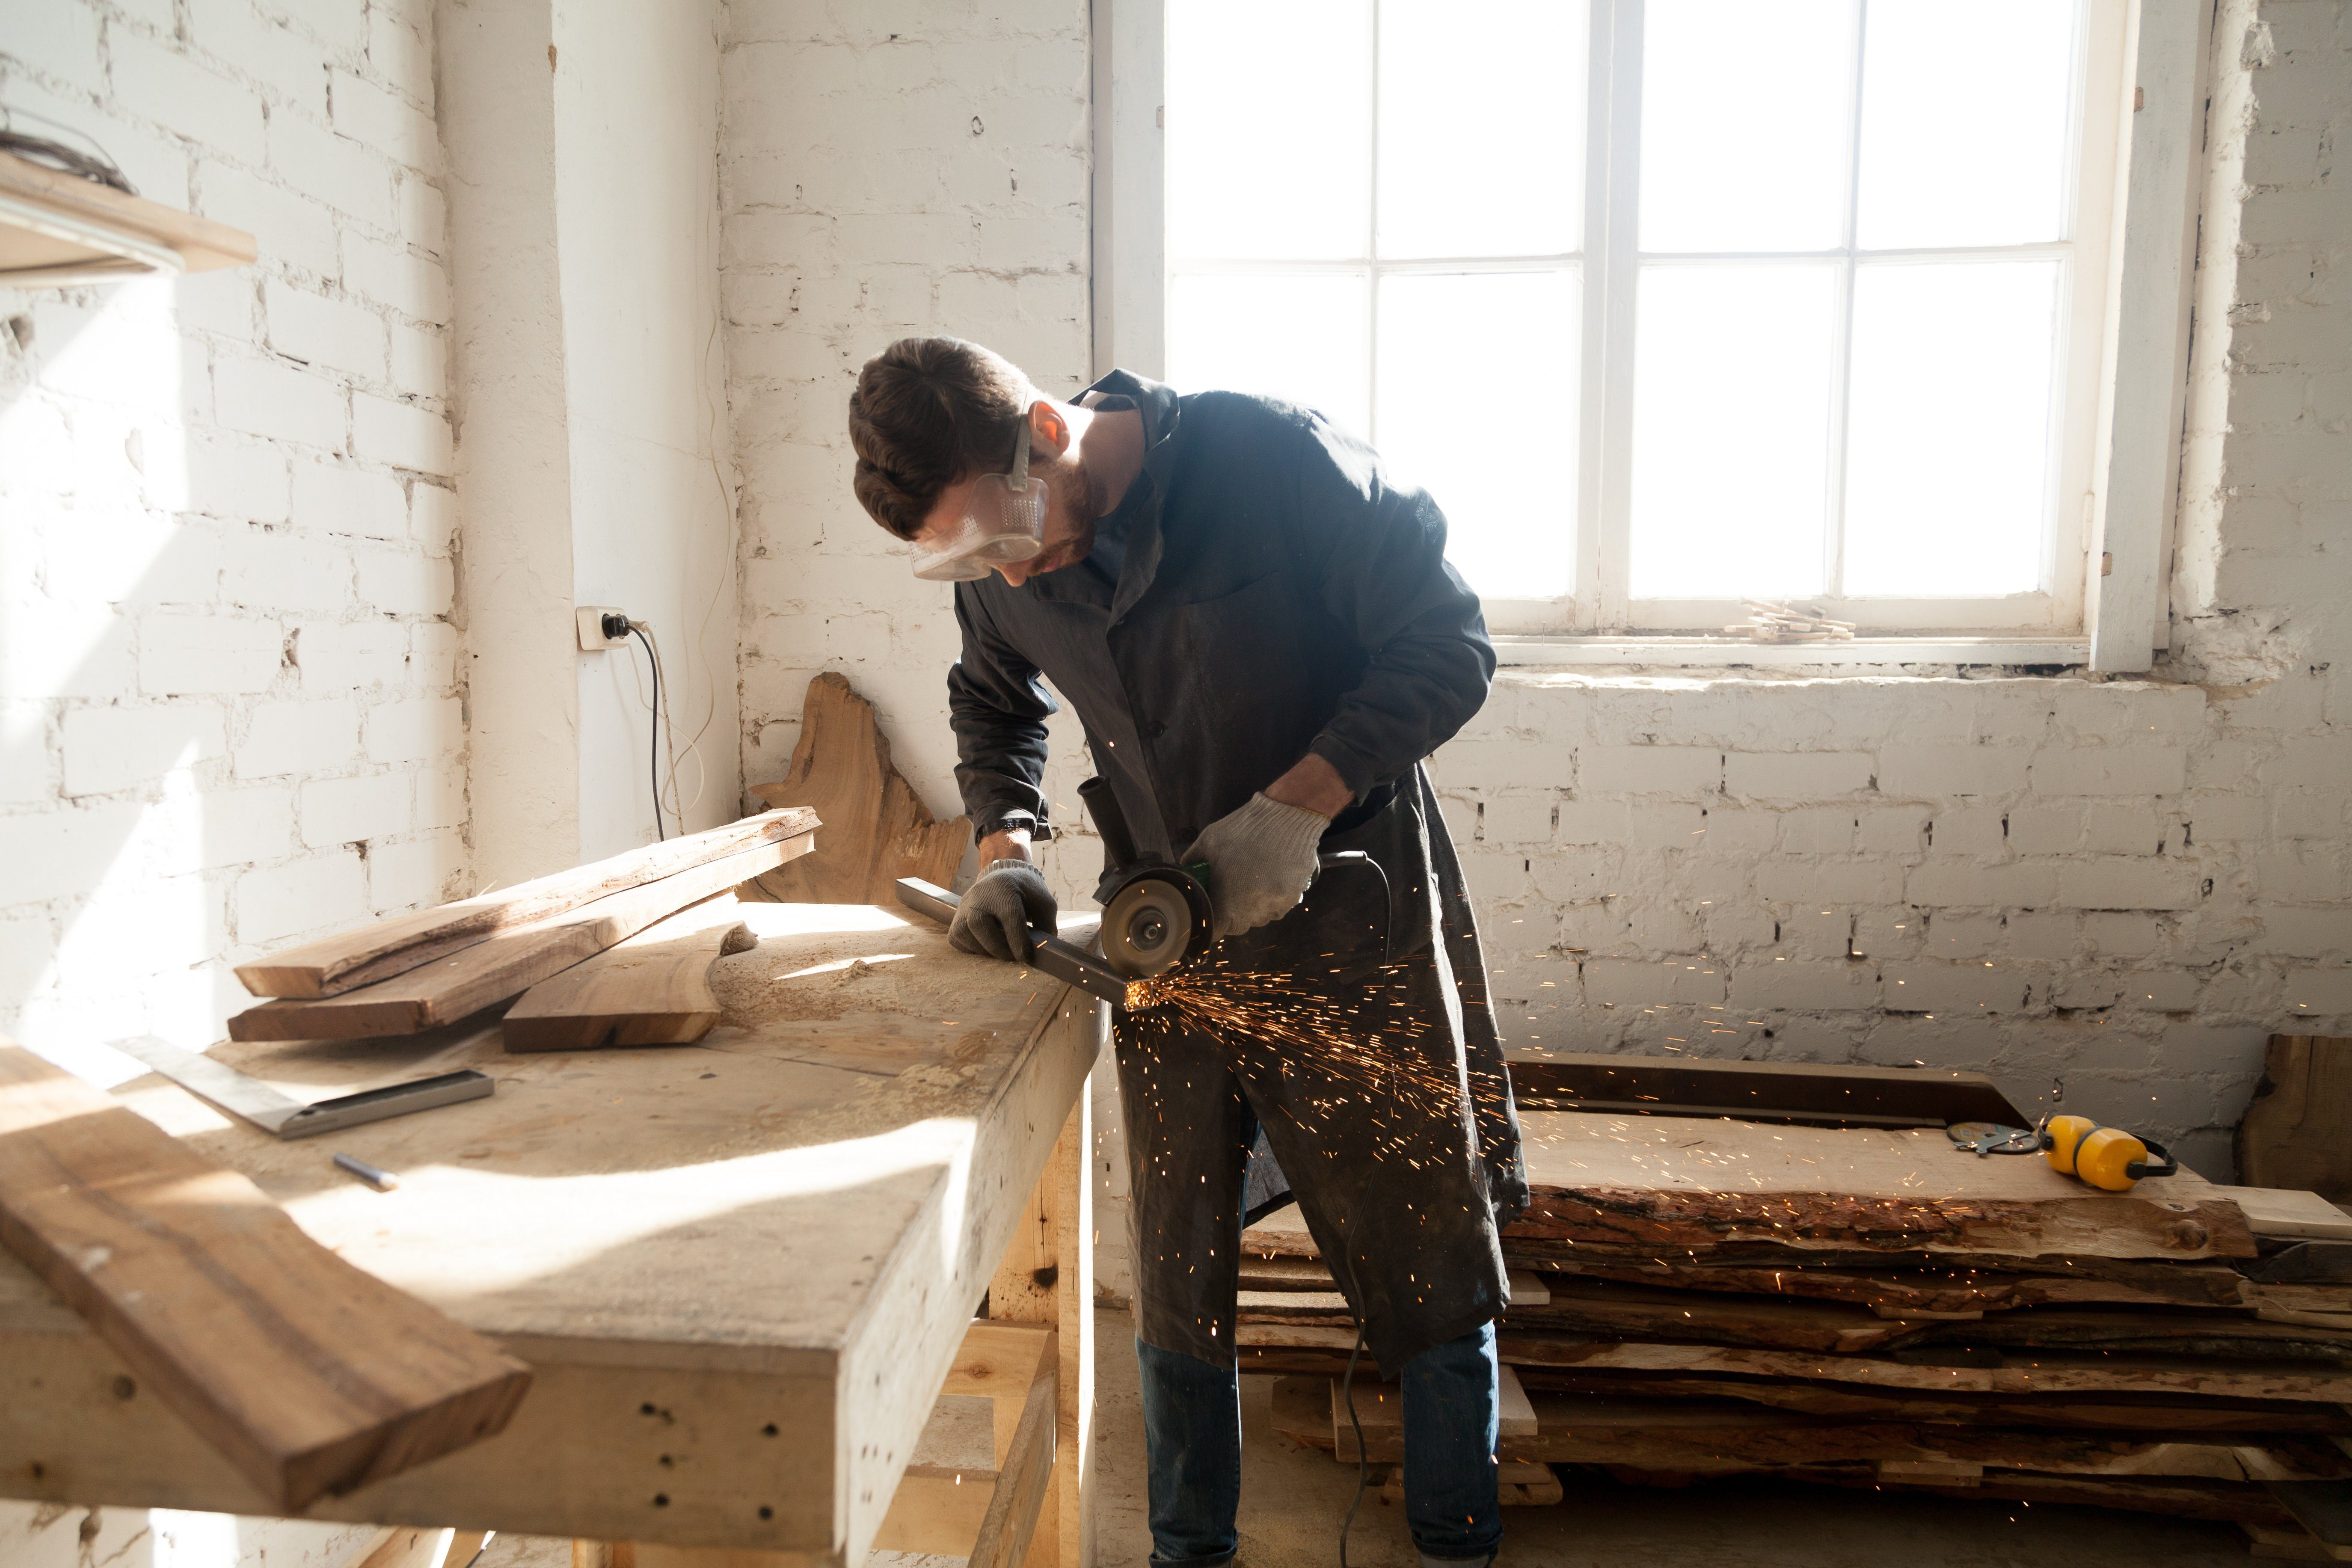 Worker cutting metal plank with angle grinder in workshop. Young man choosing skilled labor trades as first profession. Starting own small business, find side job in furniture manufacturing concept